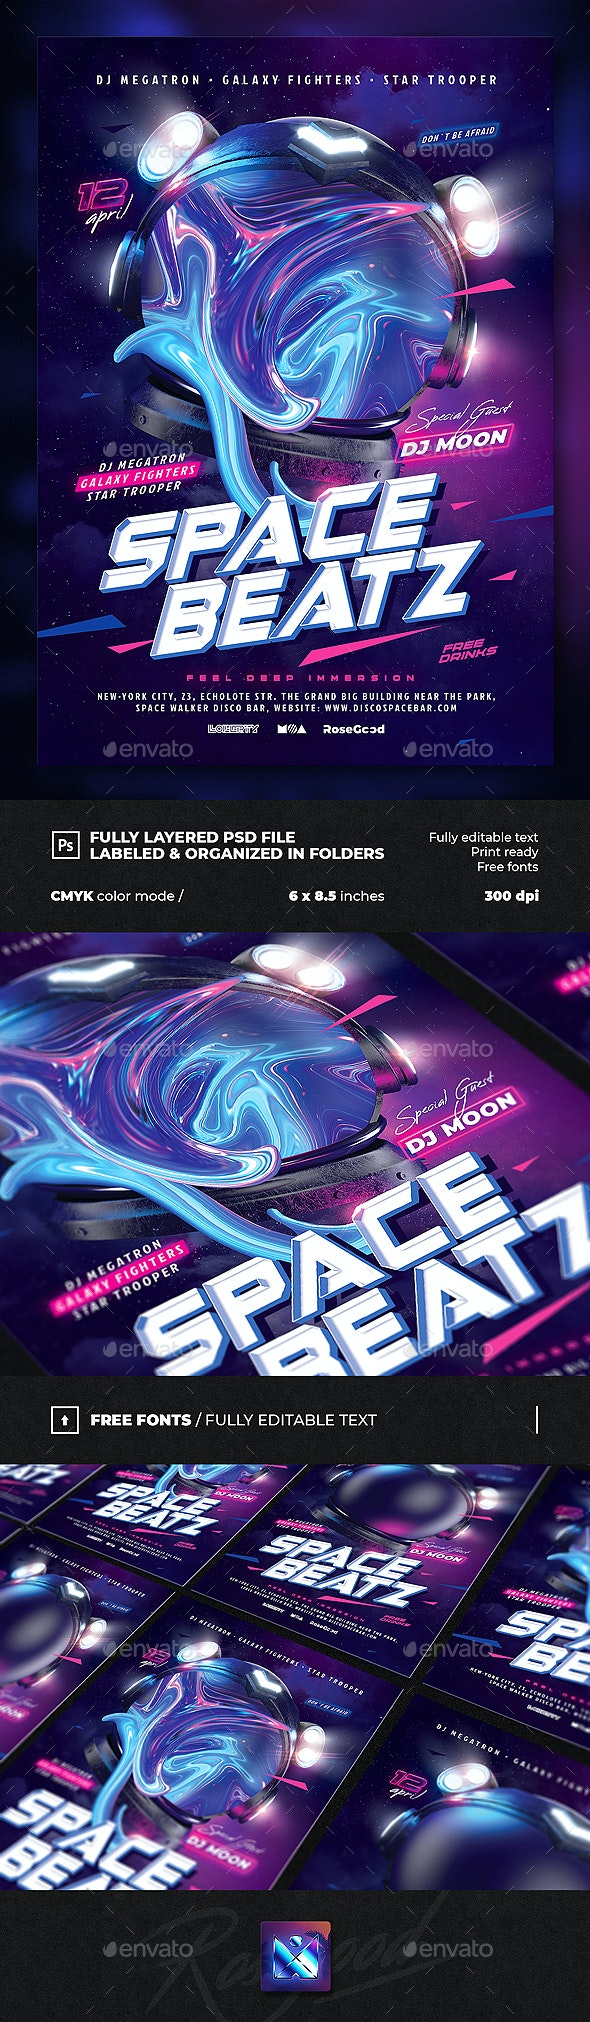 Party Flyer Space Beatz - Clubs & Parties Events